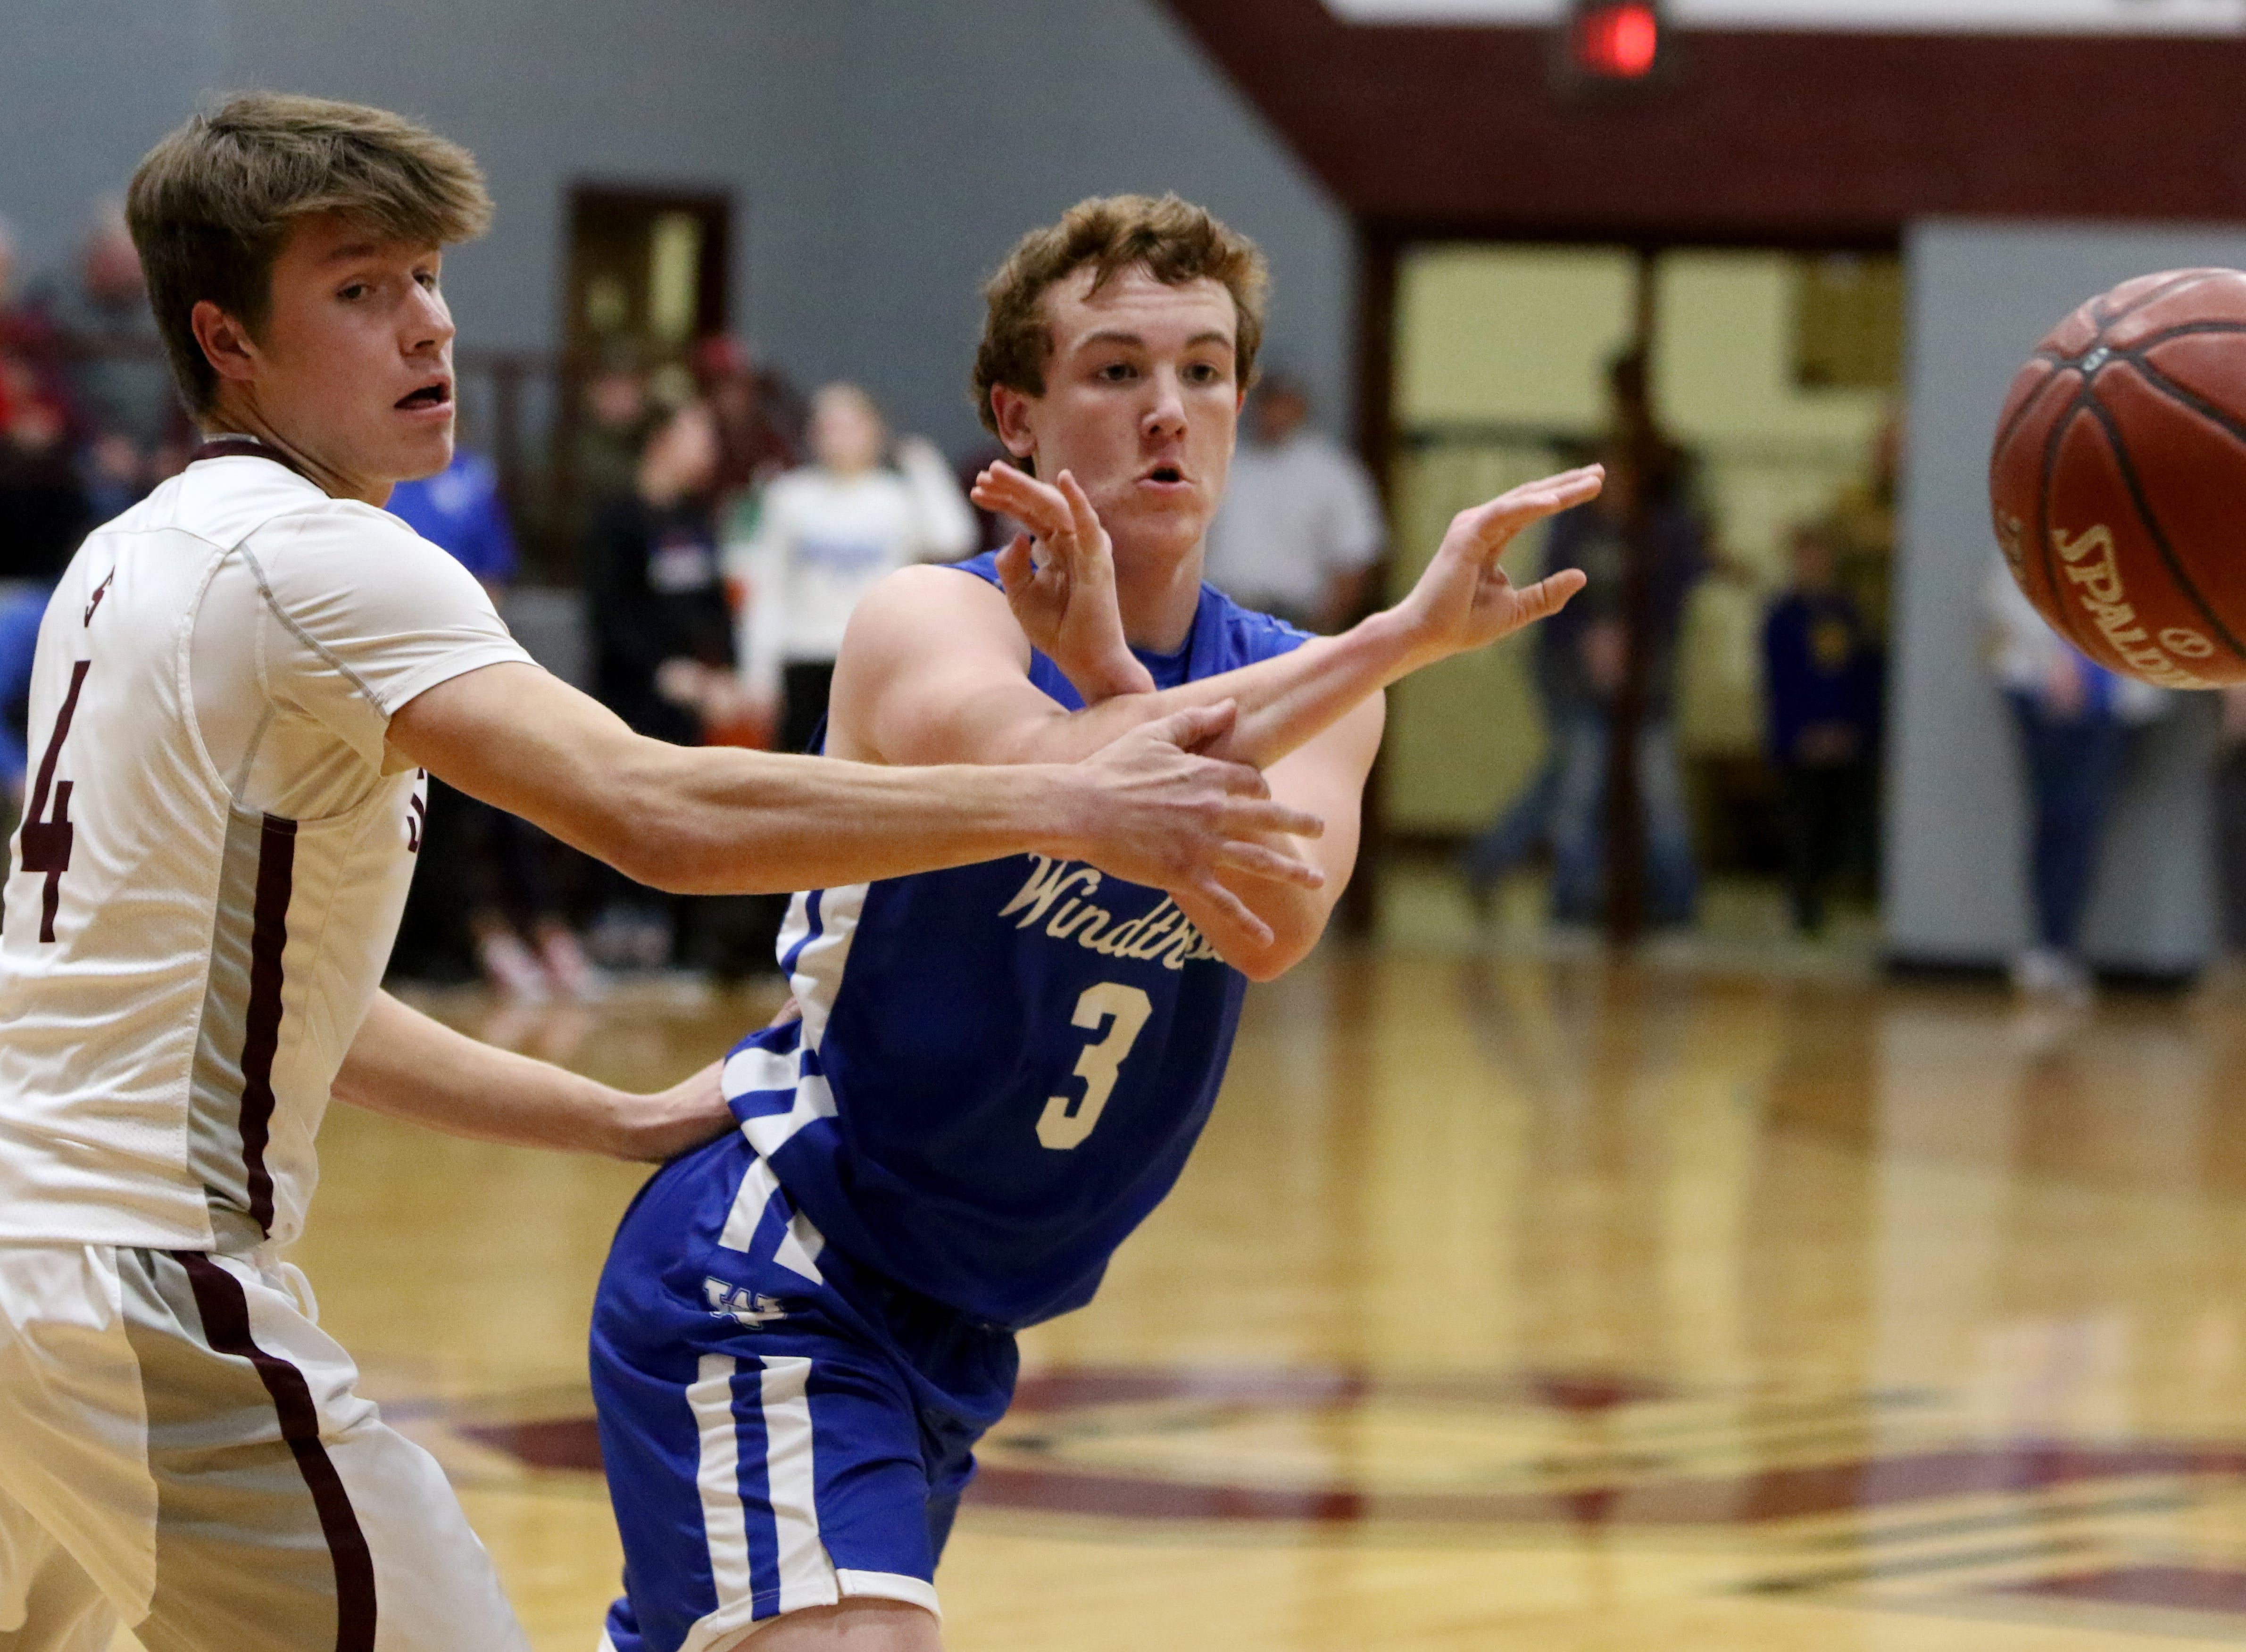 Windthorst's Cy Belcher passes by Seymour's Cade Holden Tuesday, Jan. 8, 2019, in Seymour.